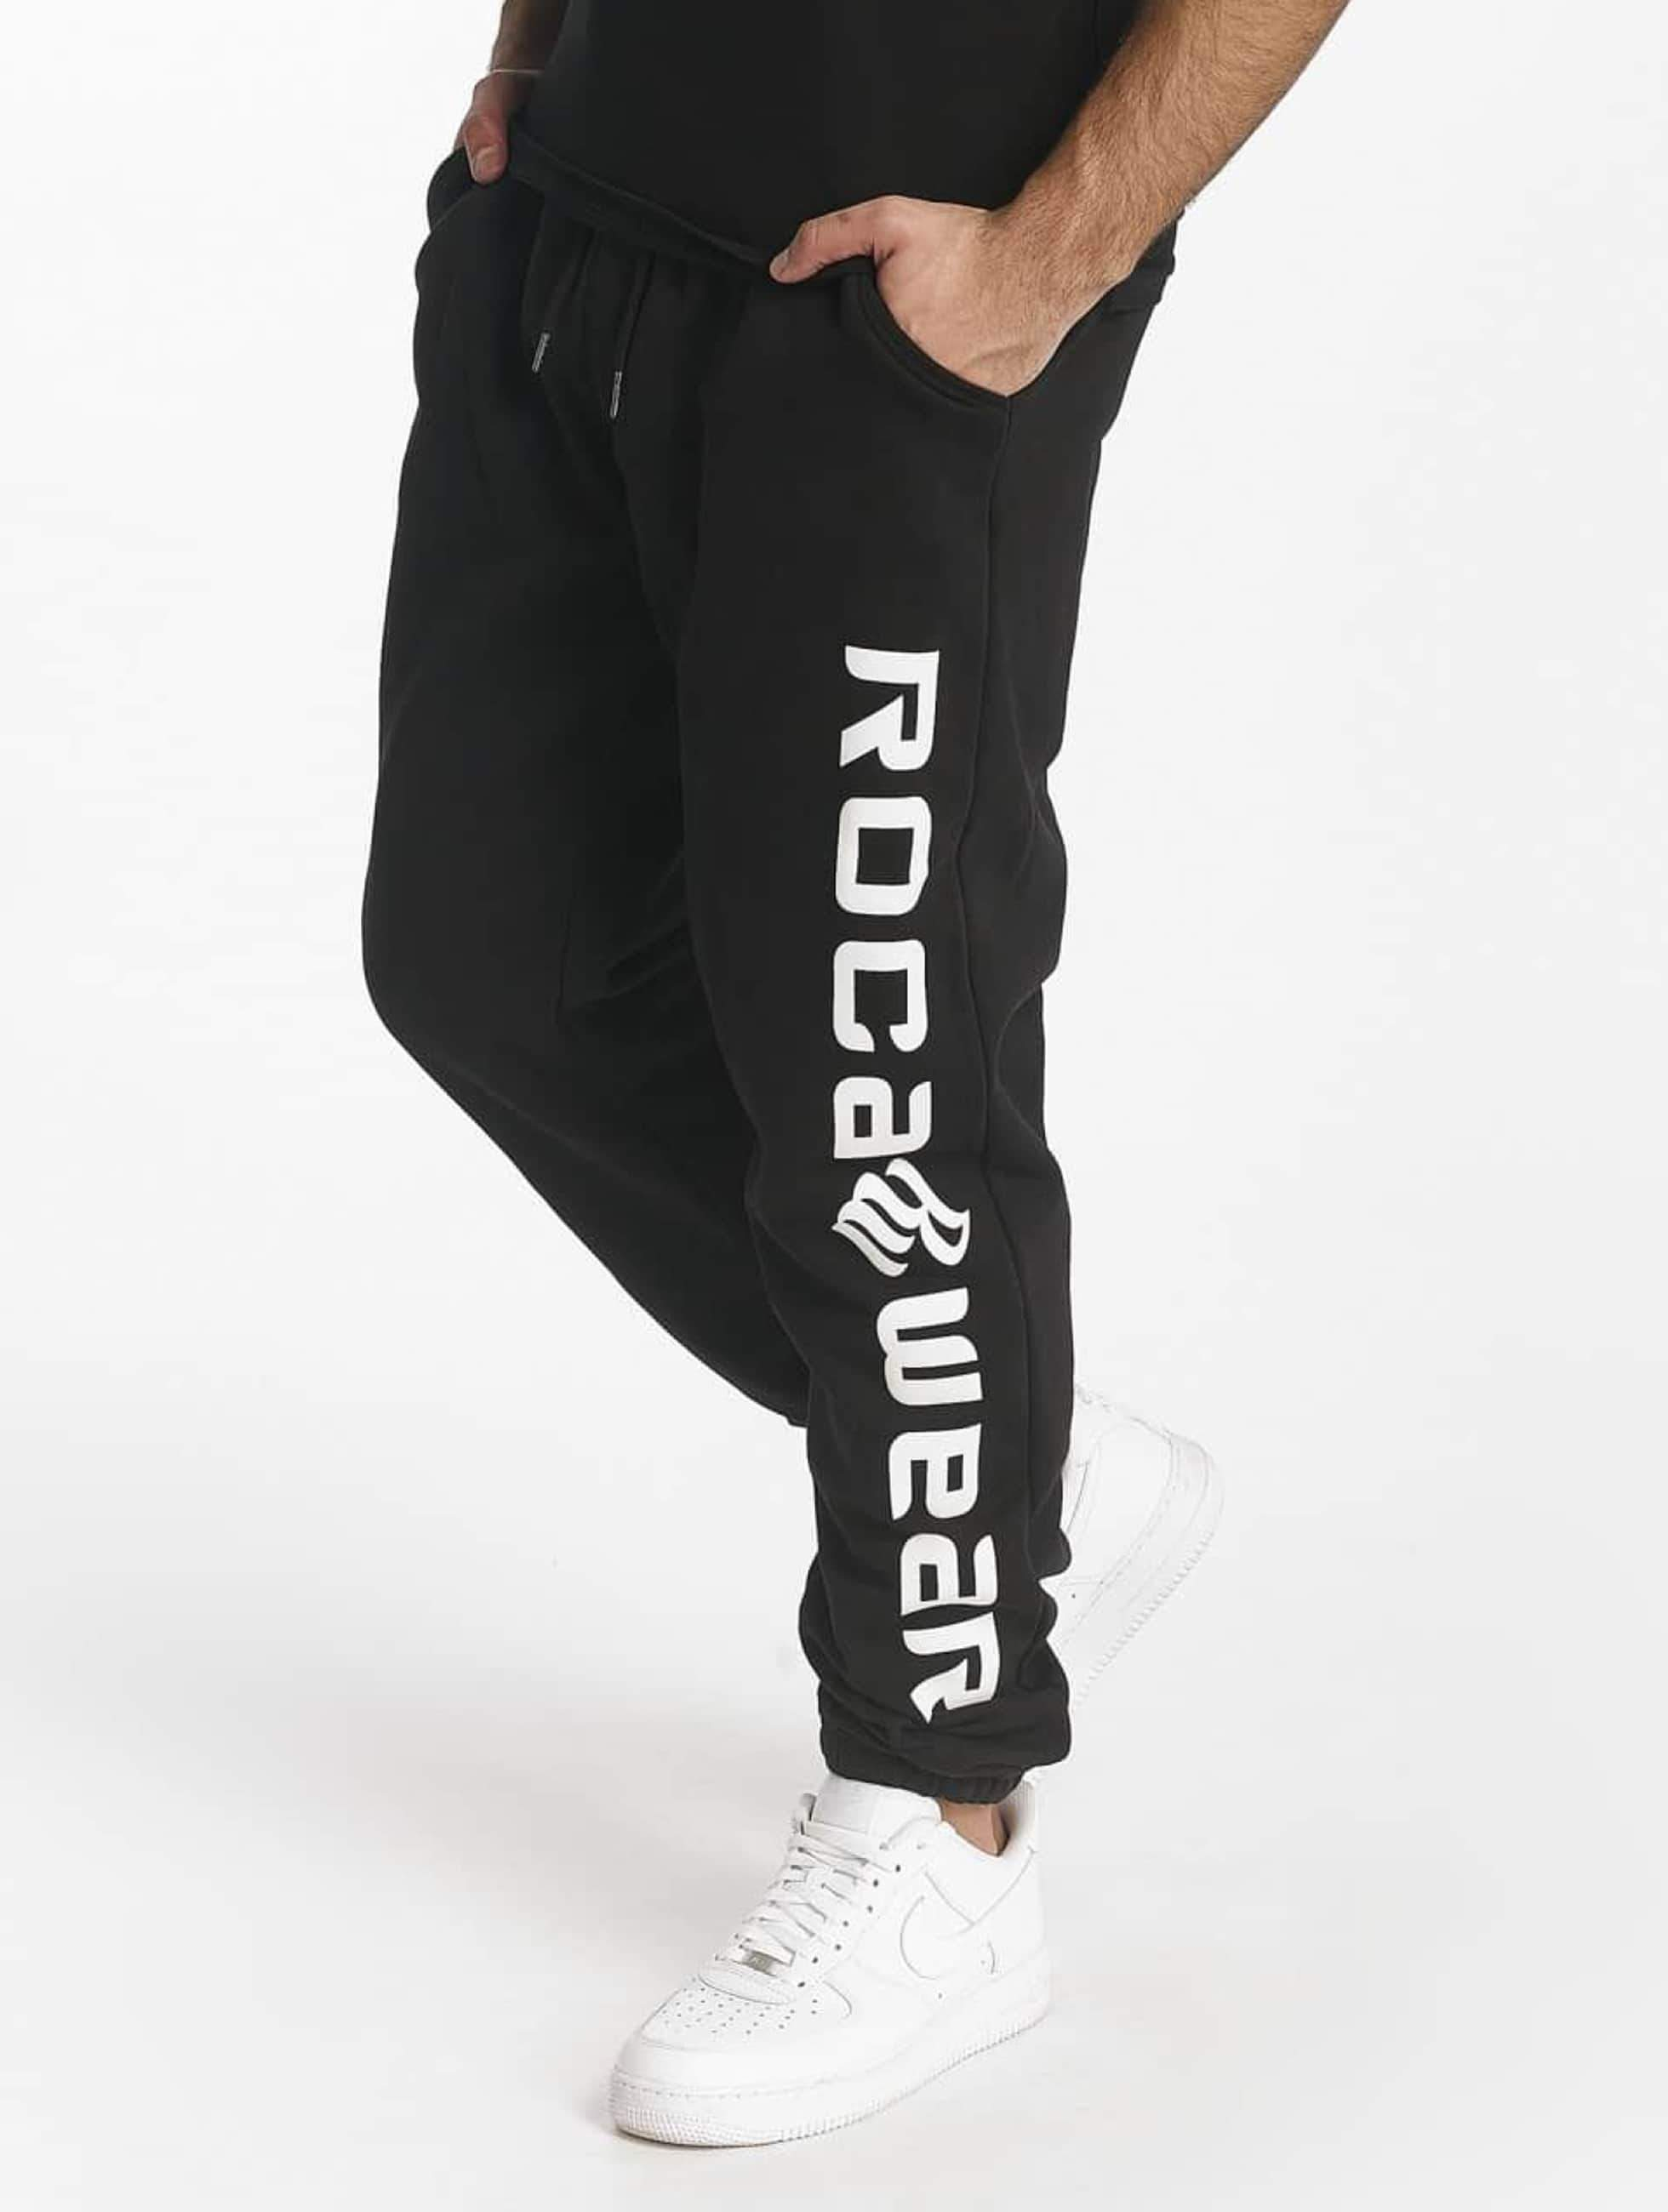 Rocawear / Sweat Pant Basic Fleece in black S